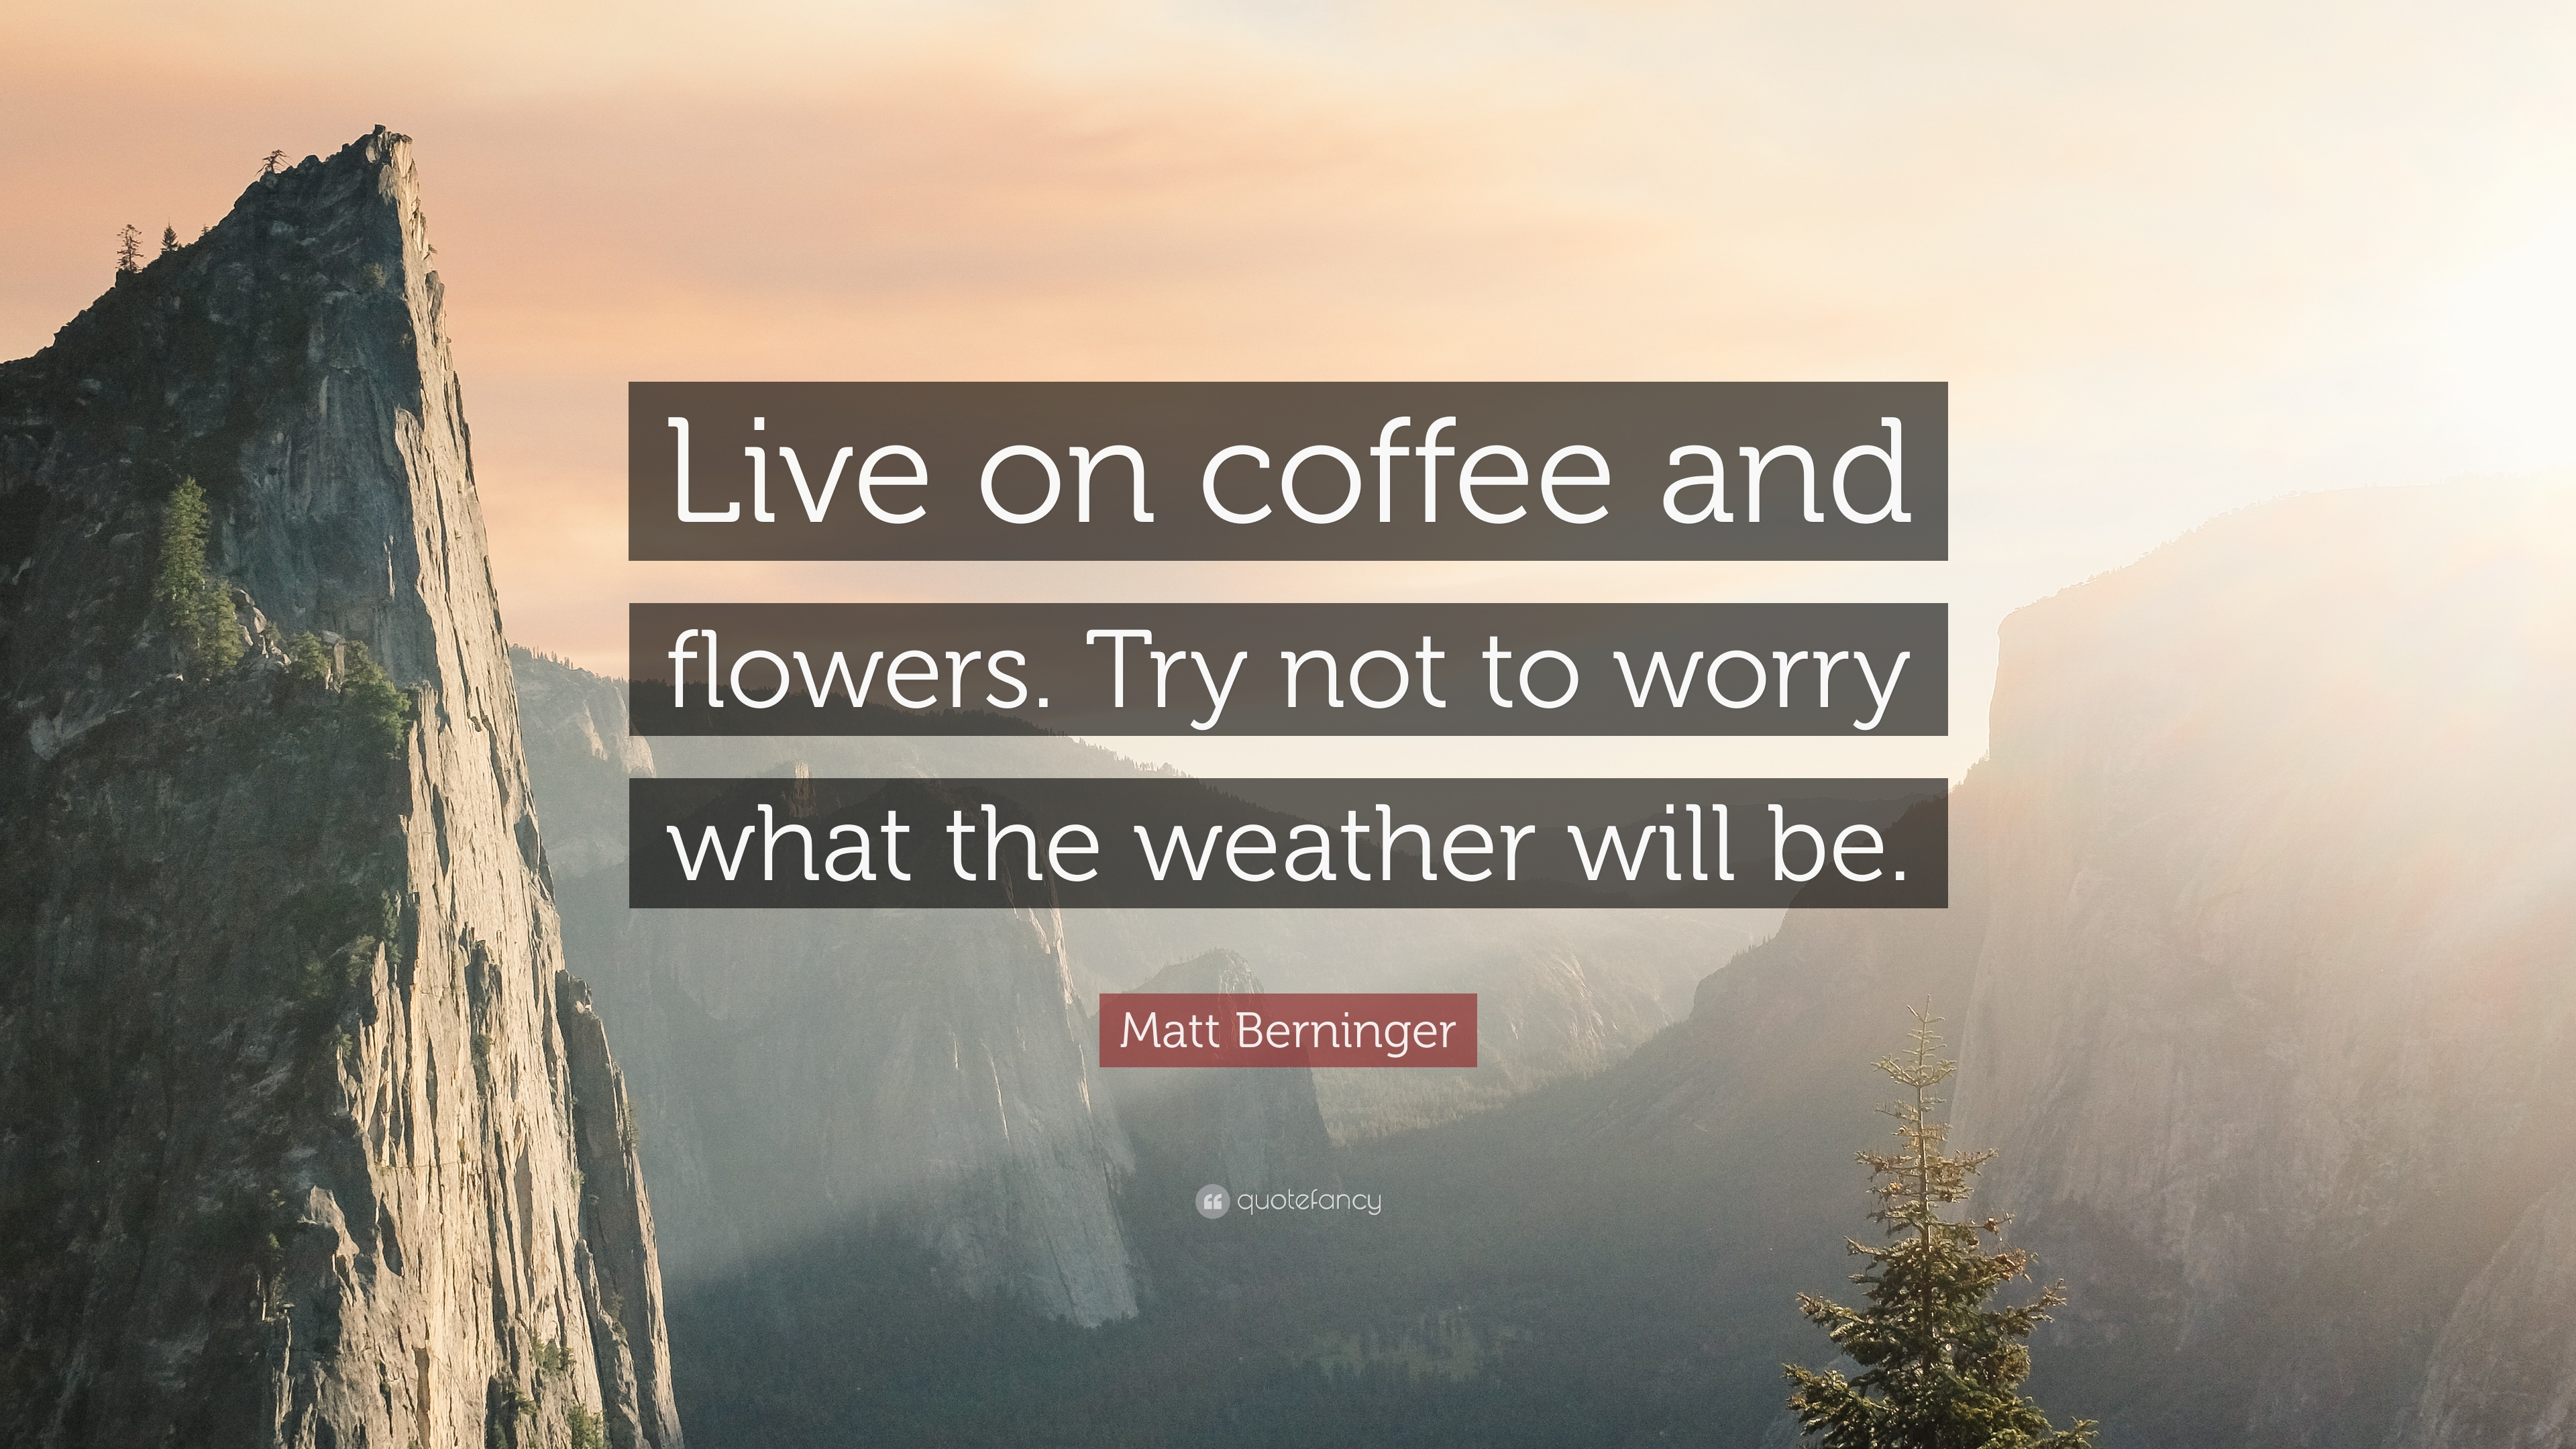 Beautiful Flower Quotes: U201cLive On Coffee And Flowers. Try Not To Worry What The